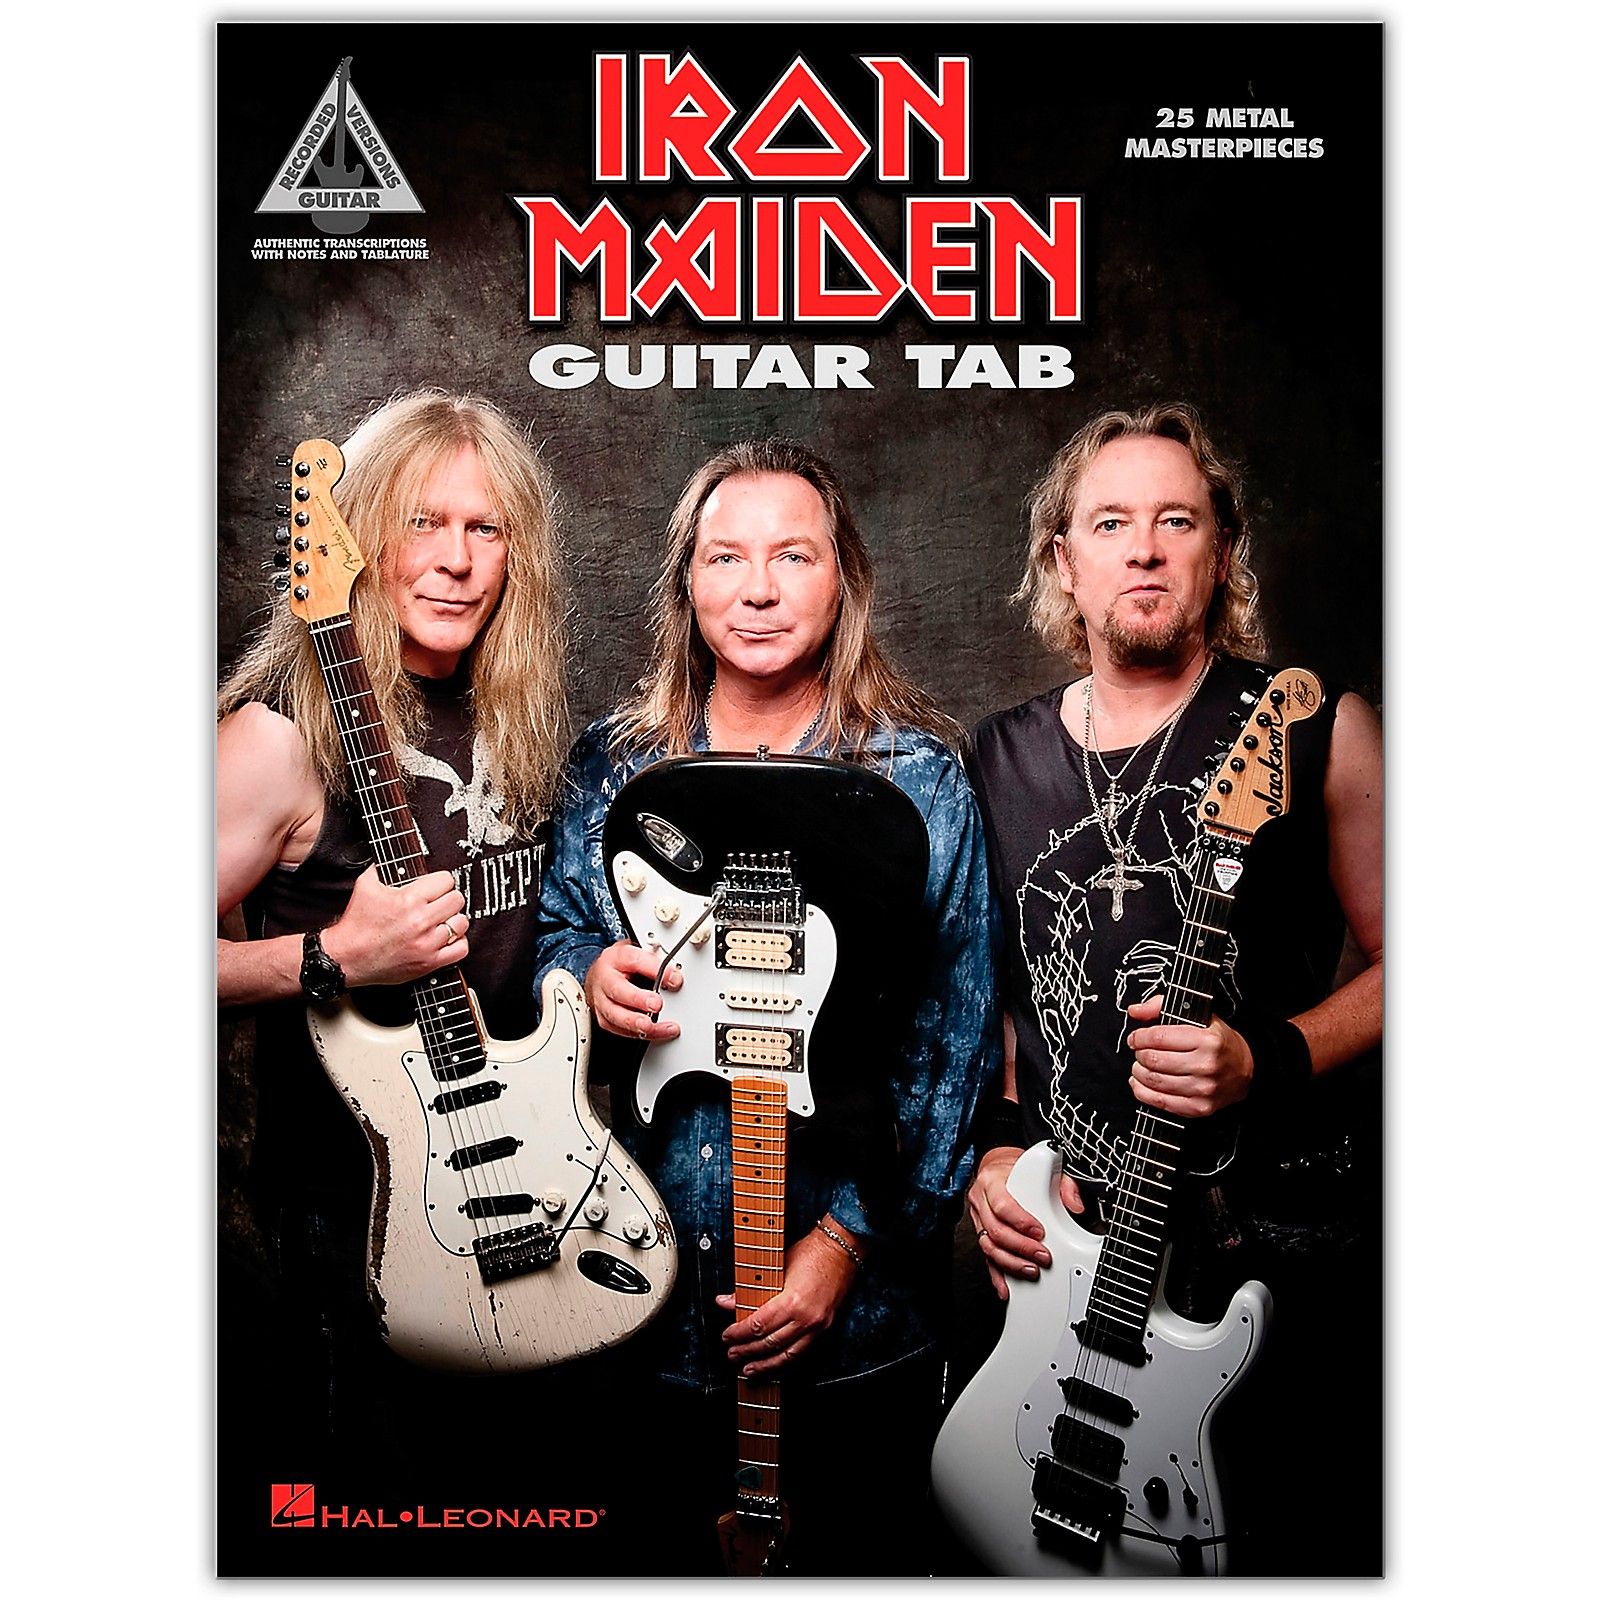 Hal Leonard Iron Maiden - Guitar Tab (25 Metal Masterpieces) Guitar Recorded Version Series Softcover by Iron Maiden